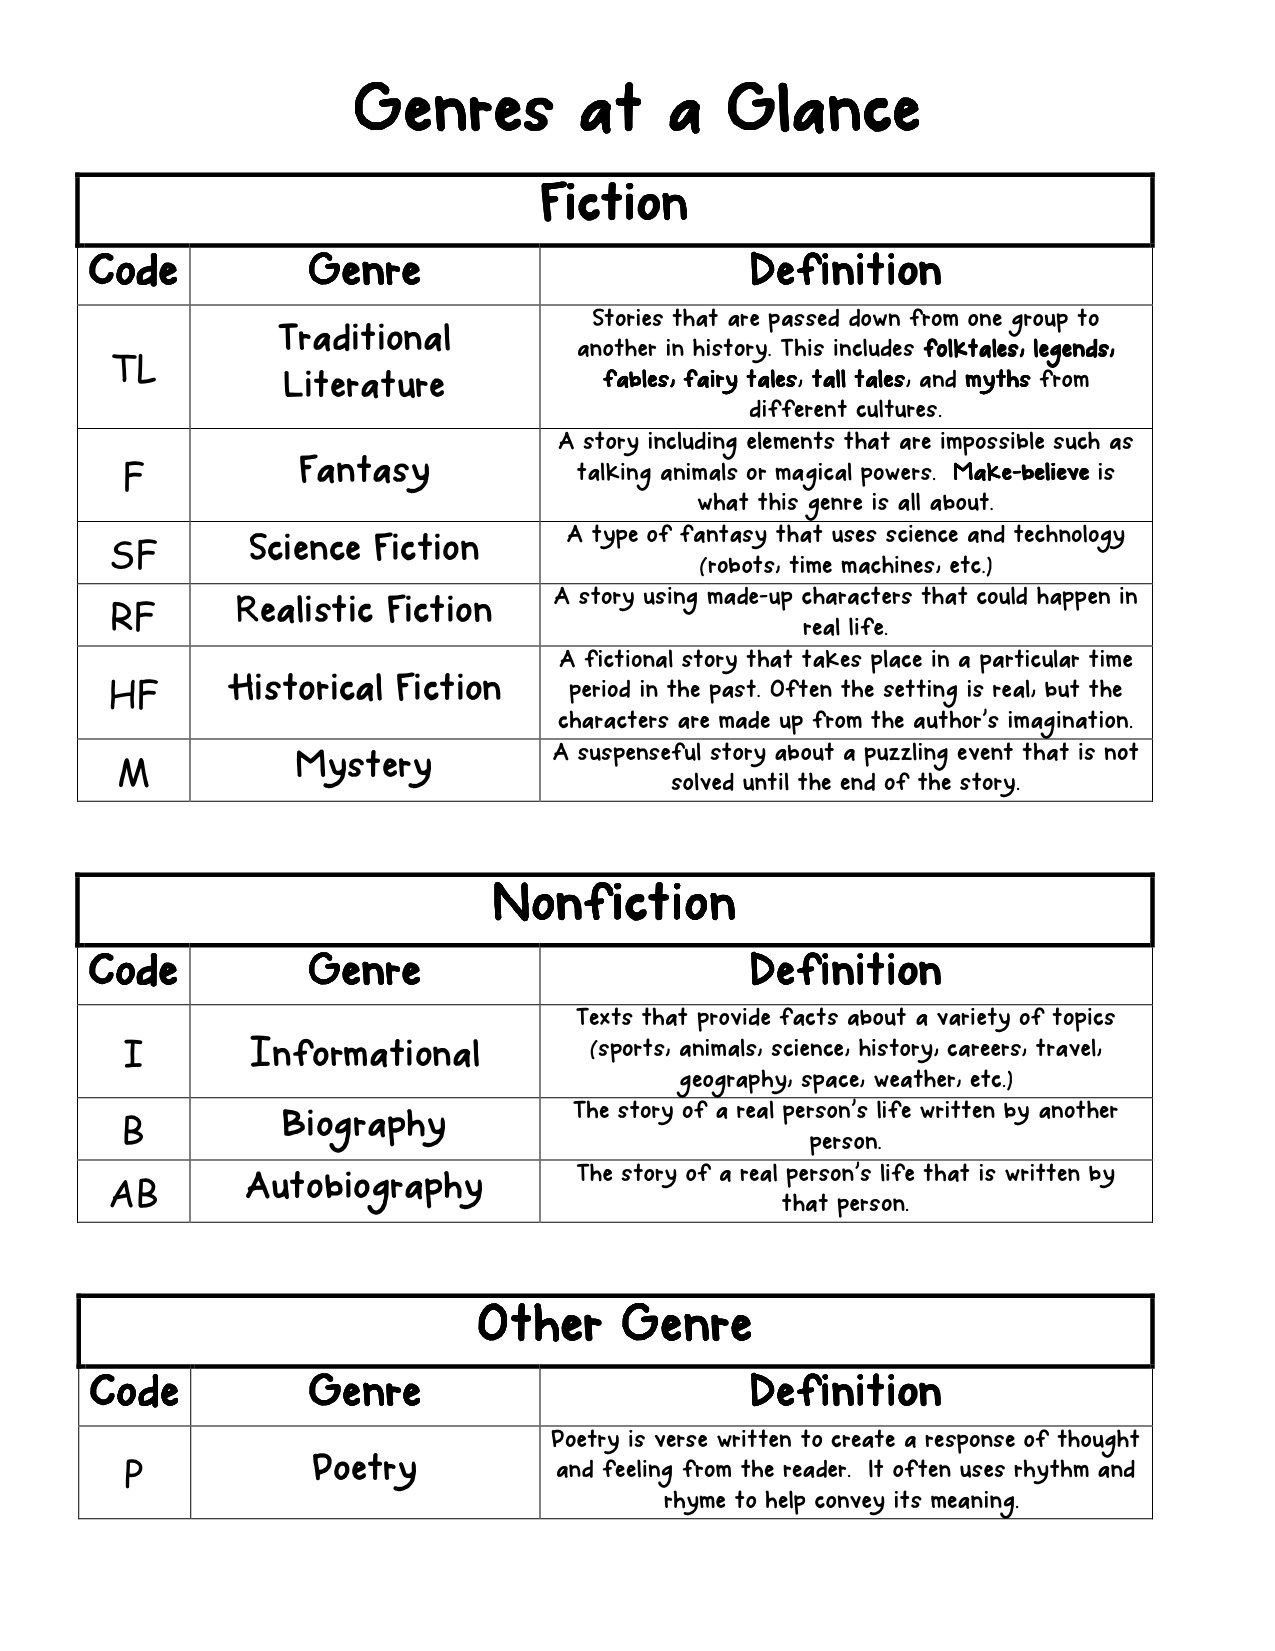 medium resolution of Genre Worksheet 3rd Grade Genres at A Glance for Reader S Notebook   40  book challenge